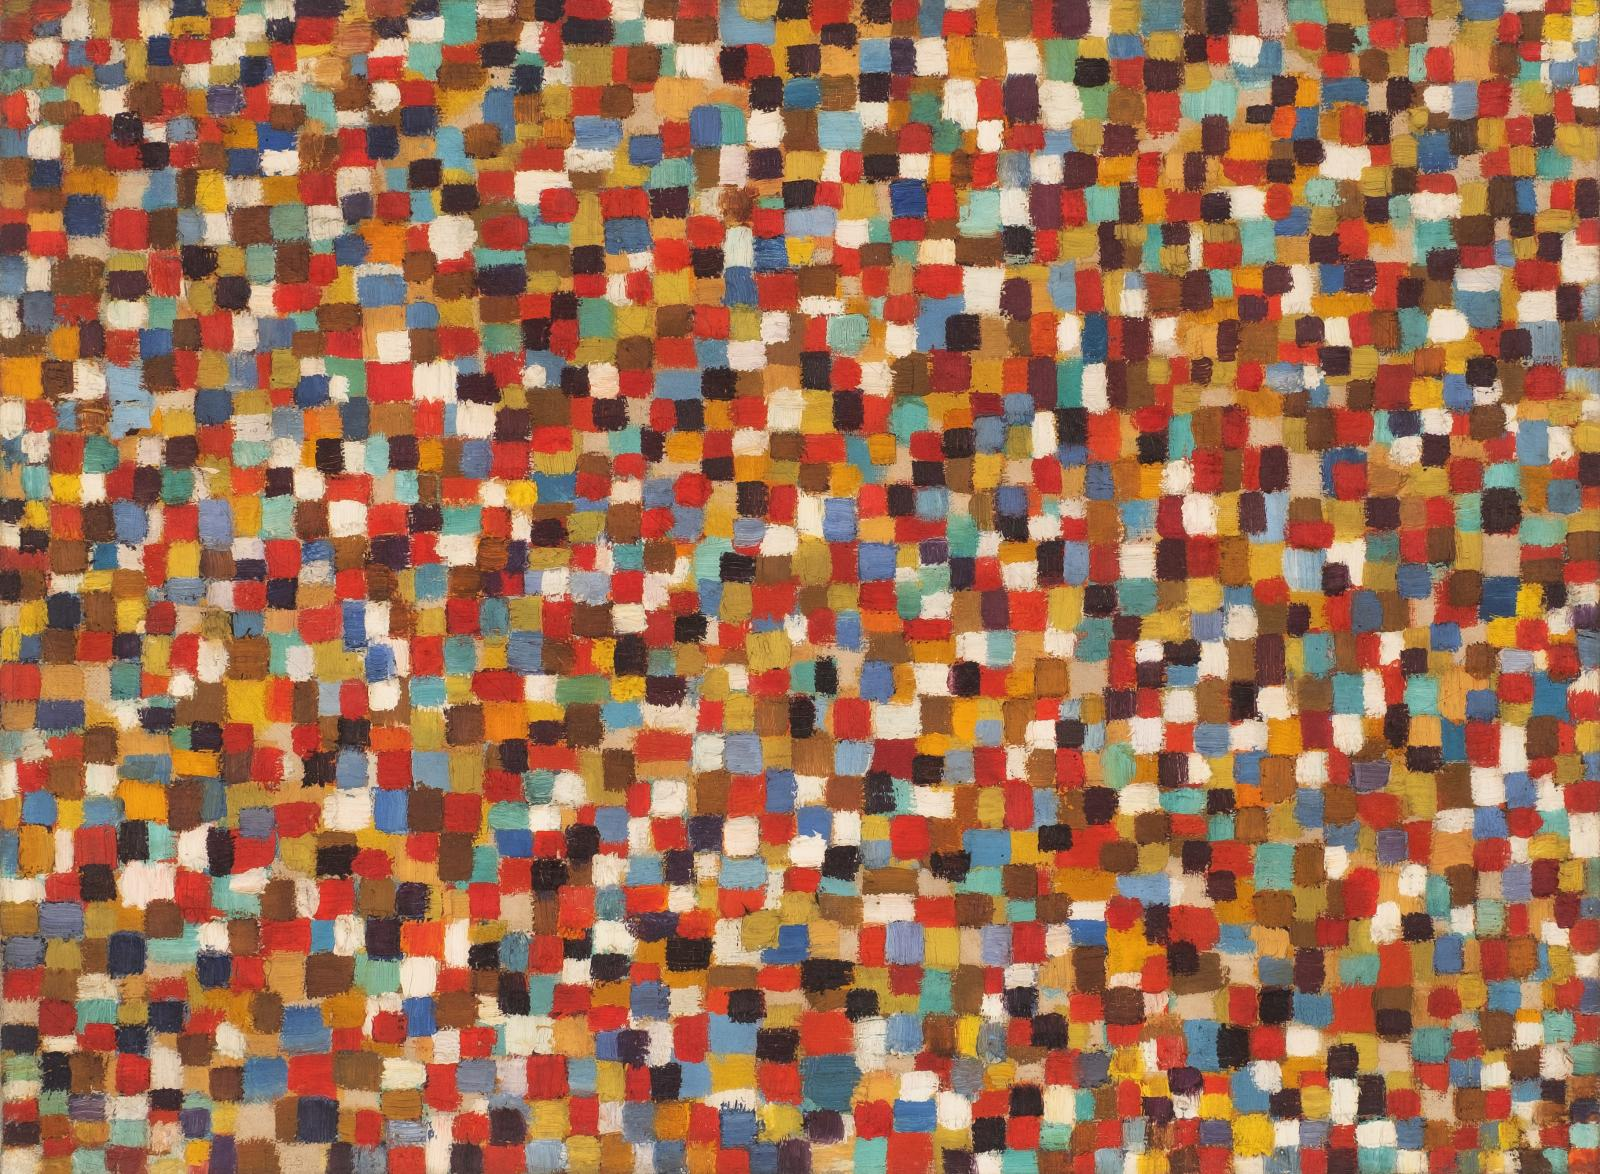 an abstract painting comprised of many small colored squares